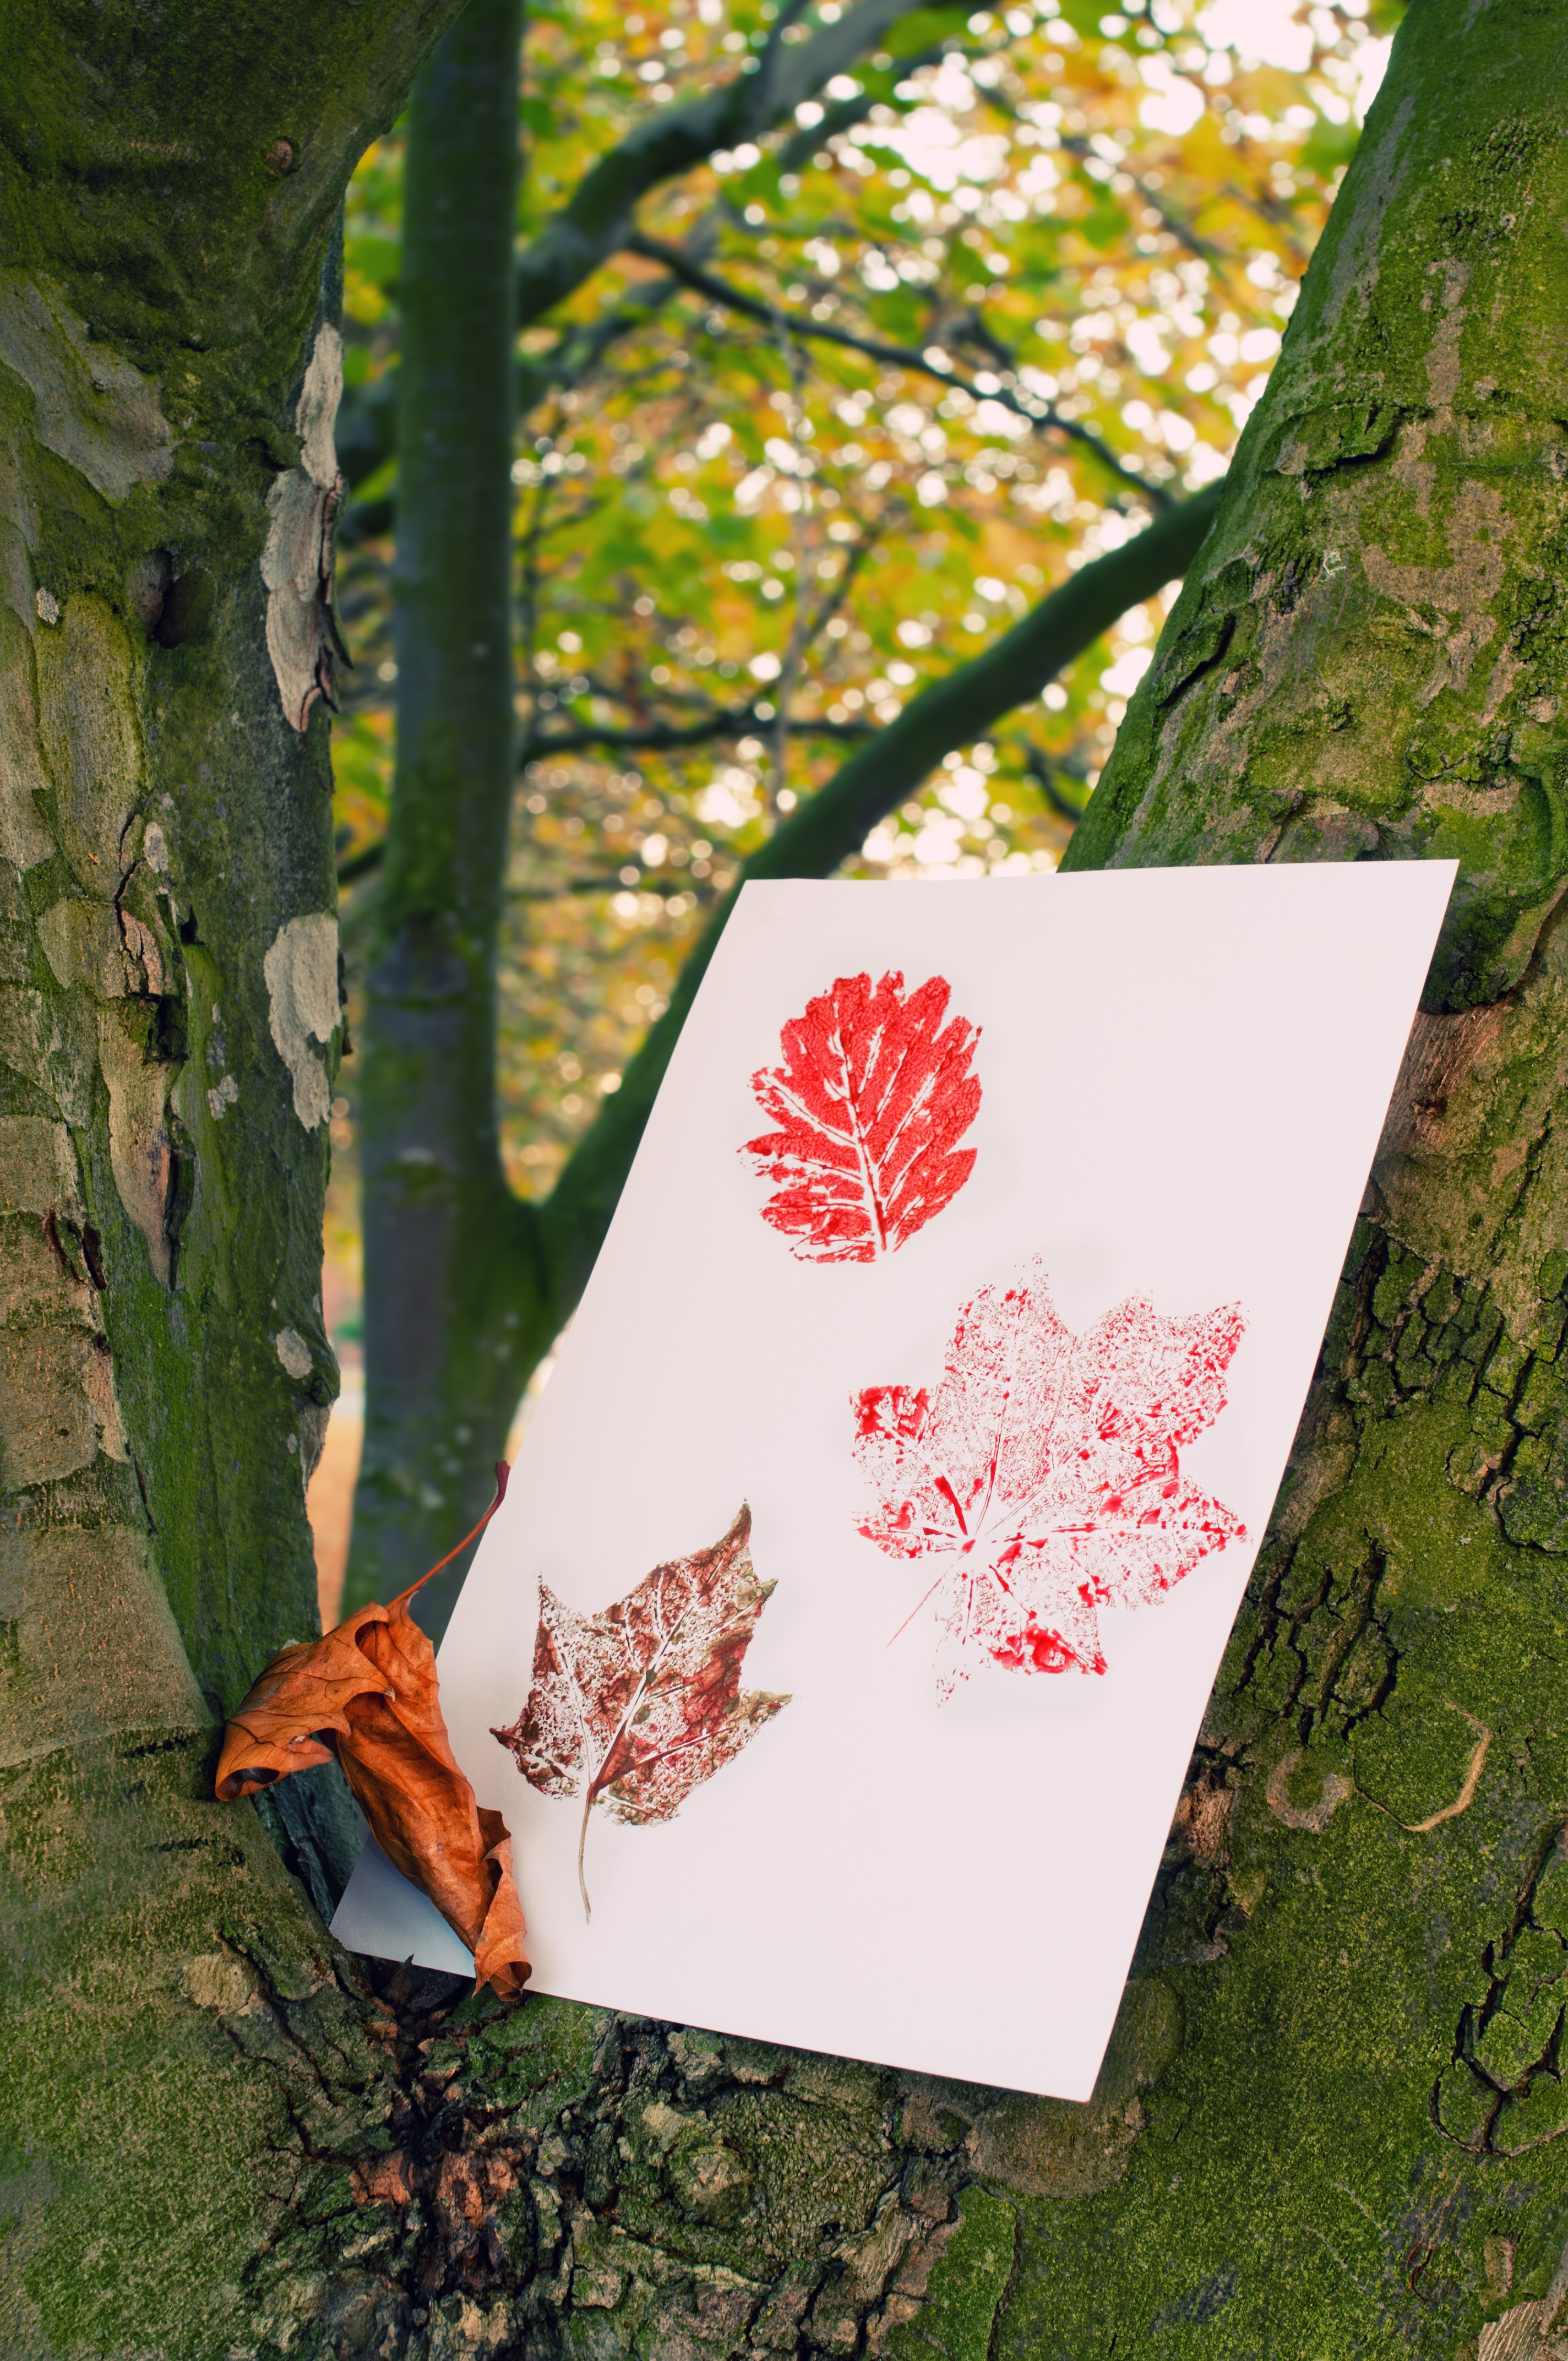 Autumn painted leaf prints in tree trunk